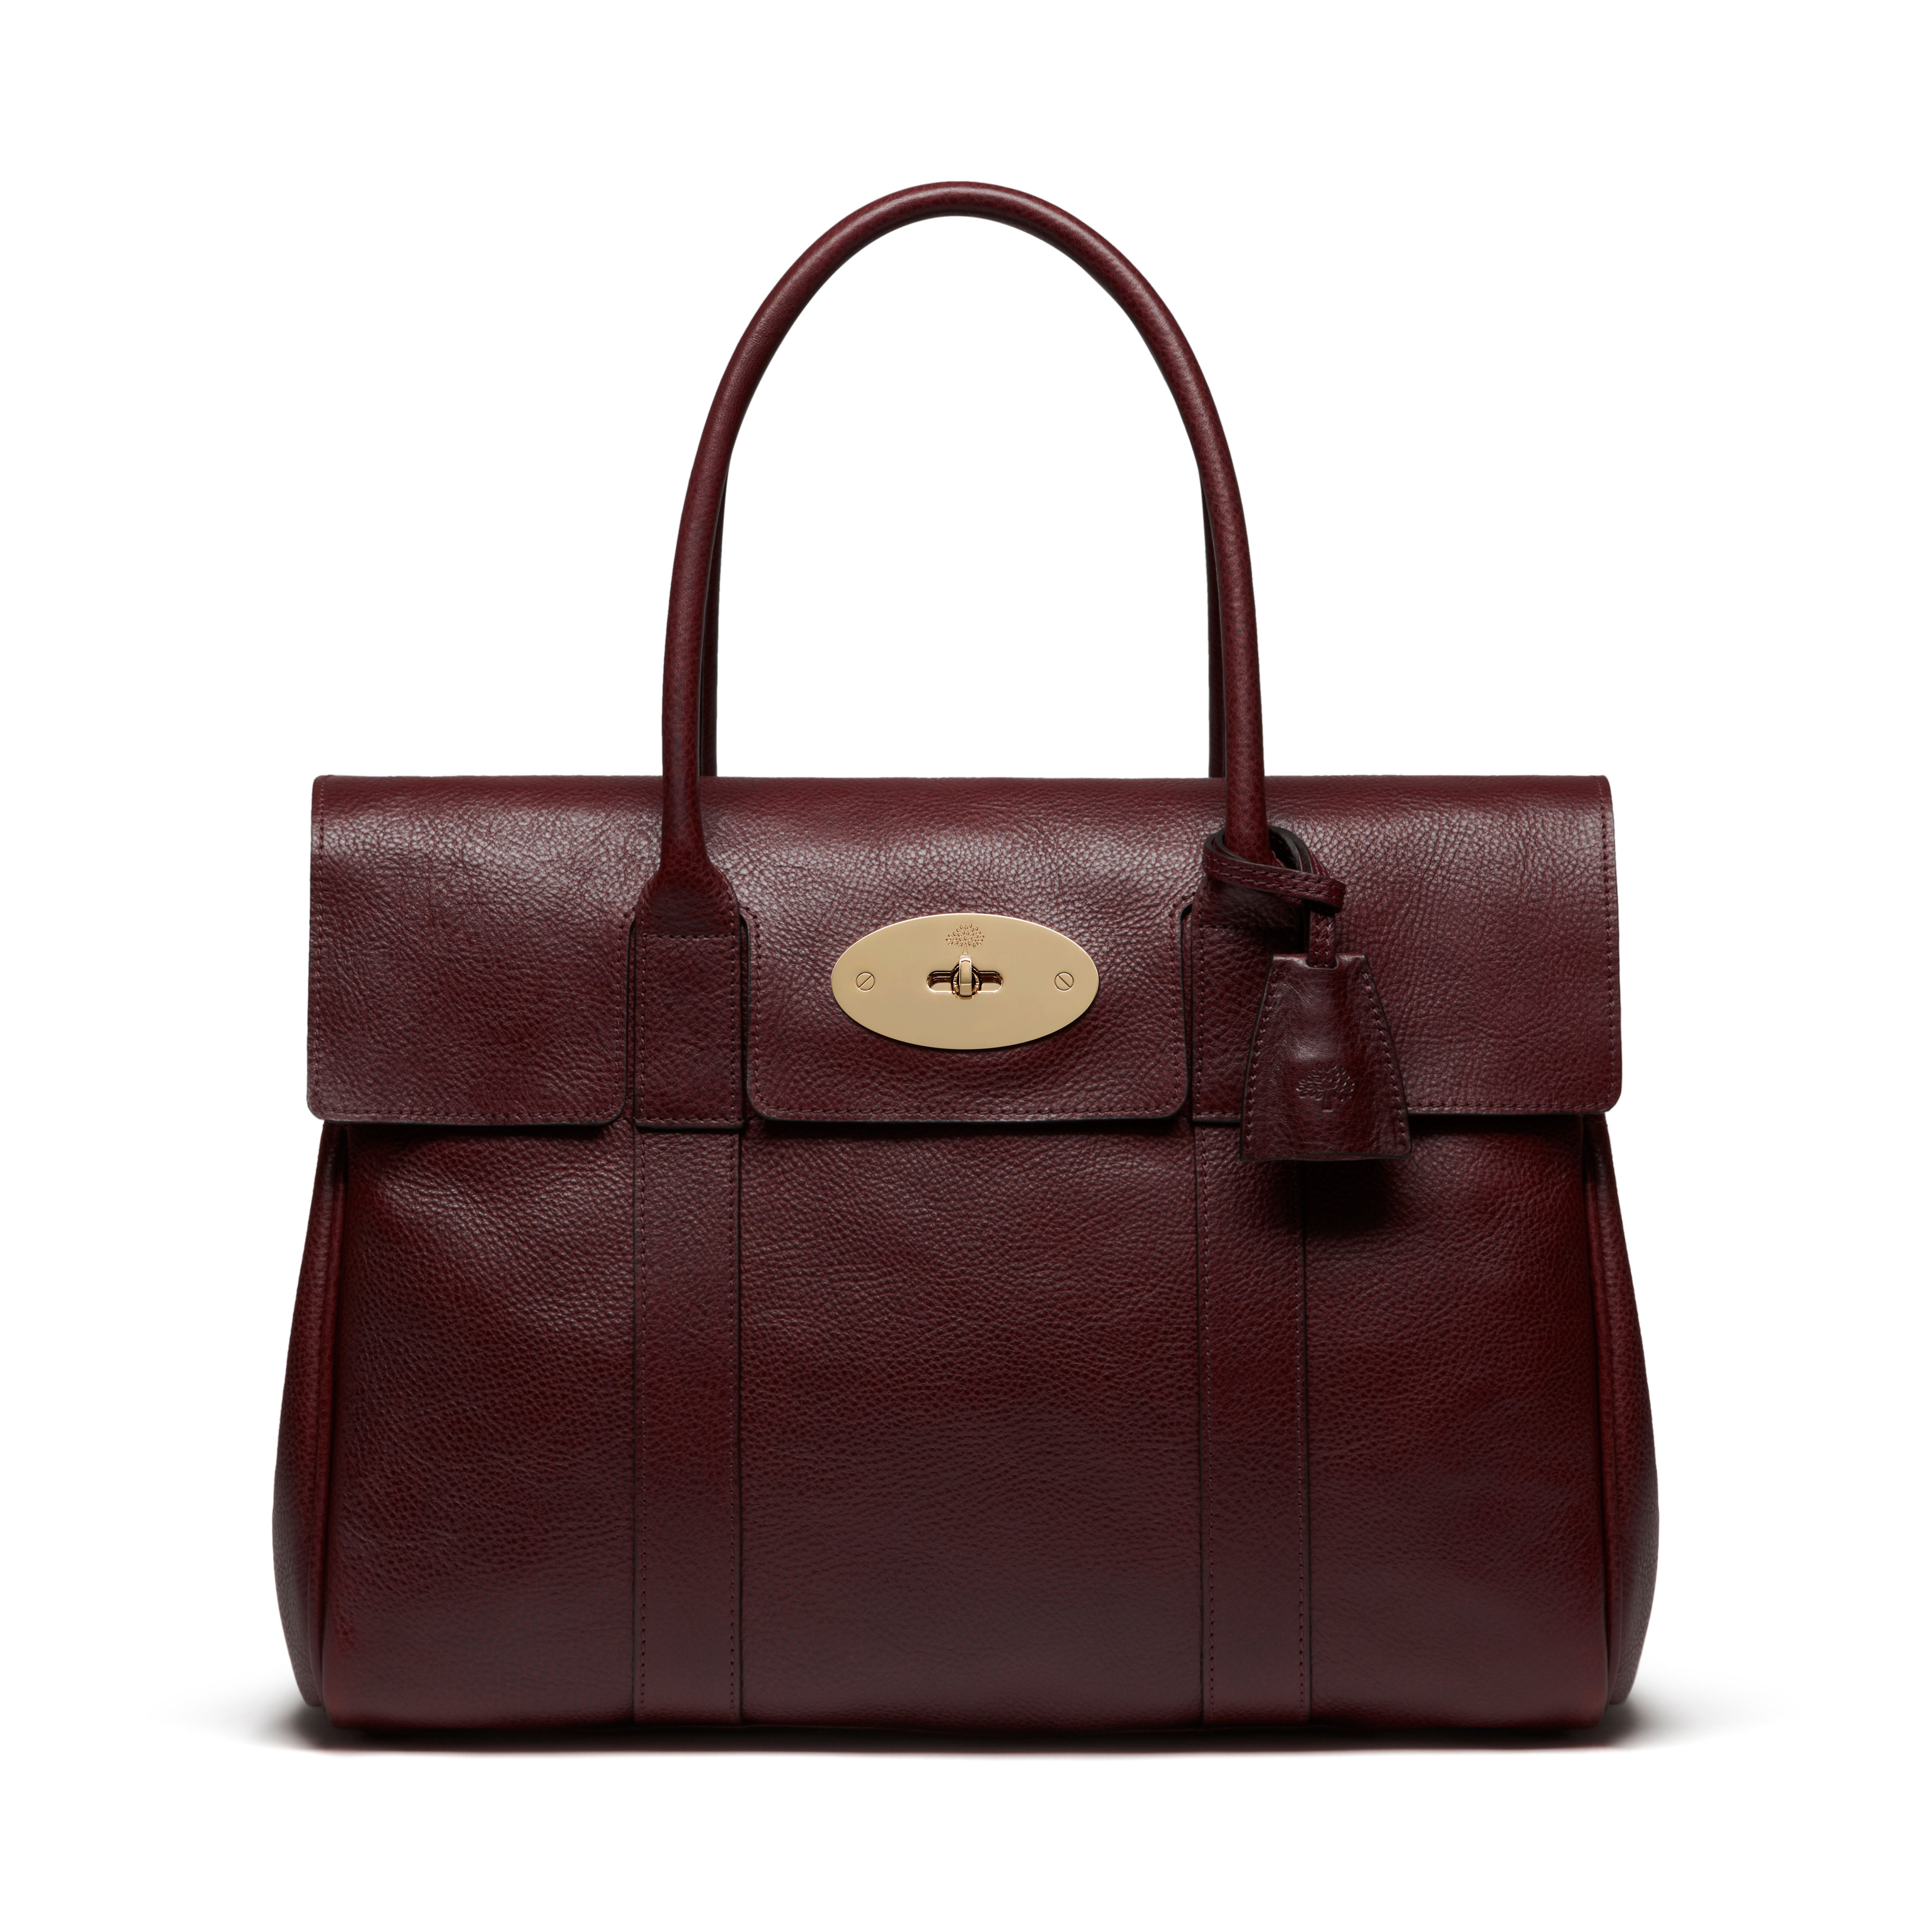 52618db997 Classic   timeless Mulberry - Bayswater in Oxblood Natural Leather ...